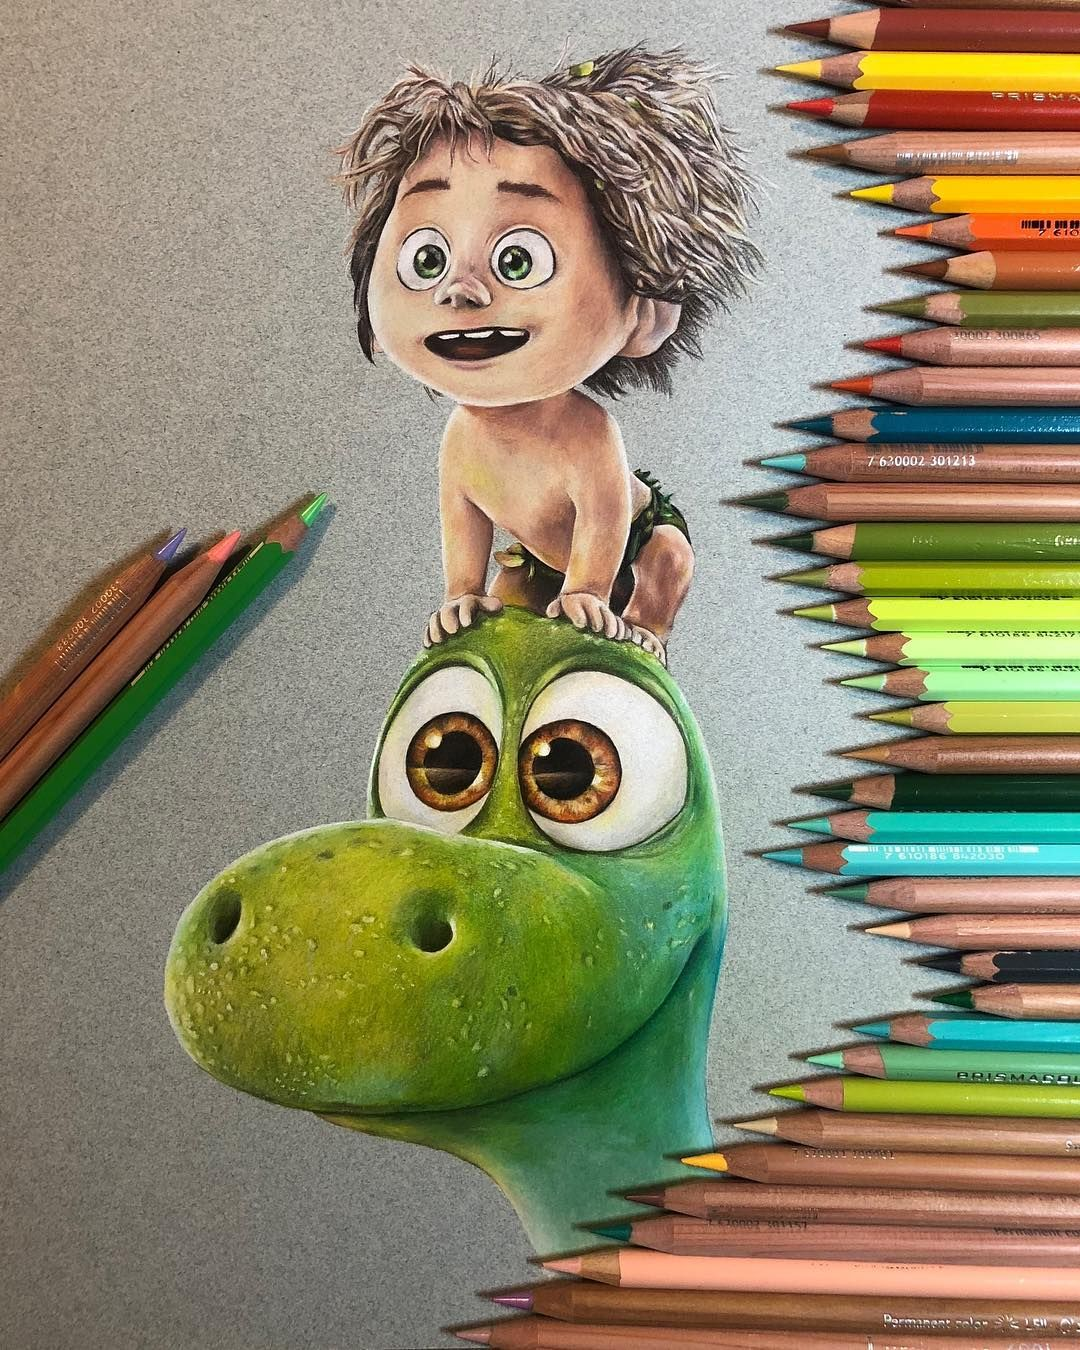 Done No Filter Gooddinosaur Coloredpencil Art Coloredpencildrawing Drawing Fabercastell Polychr Colorful Drawings Disney Art Drawings Disney Drawings